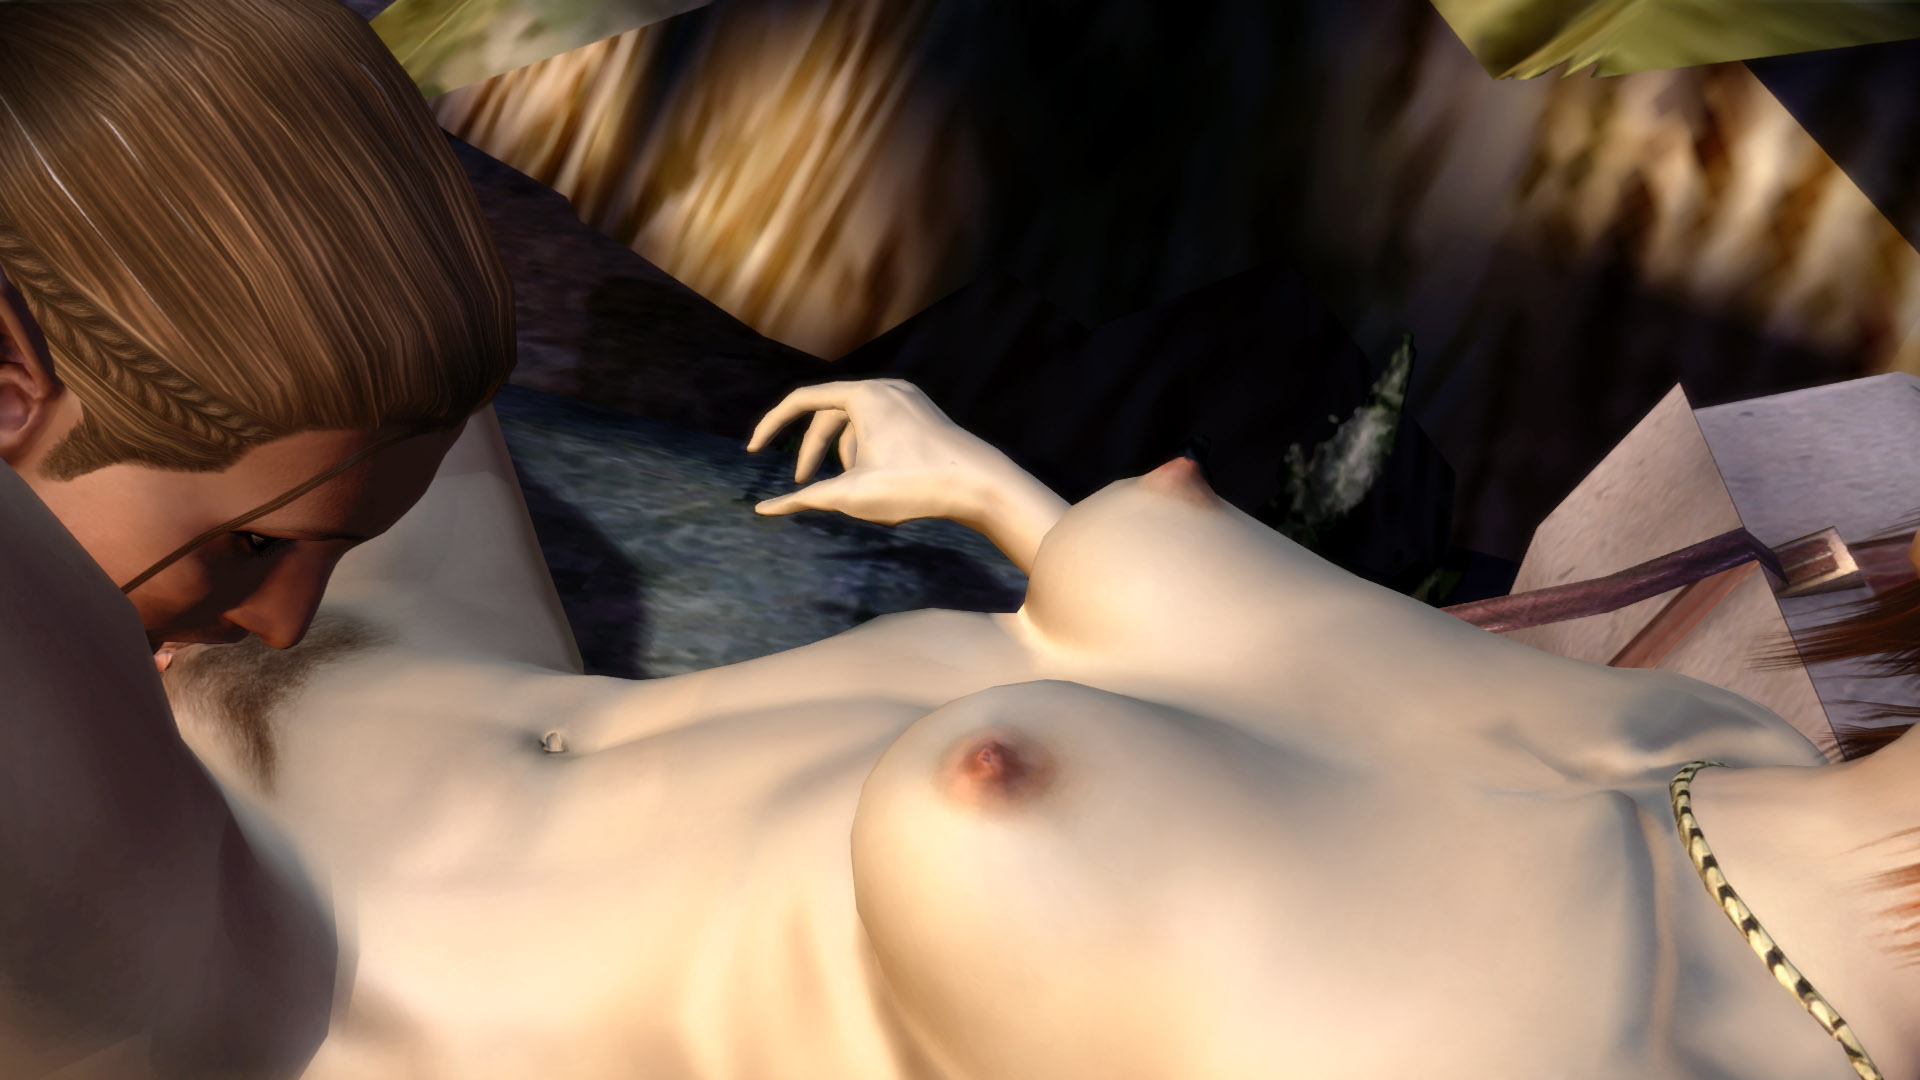 3D nakedskin pics tomb raider-nude-patch shtm! hentia videos